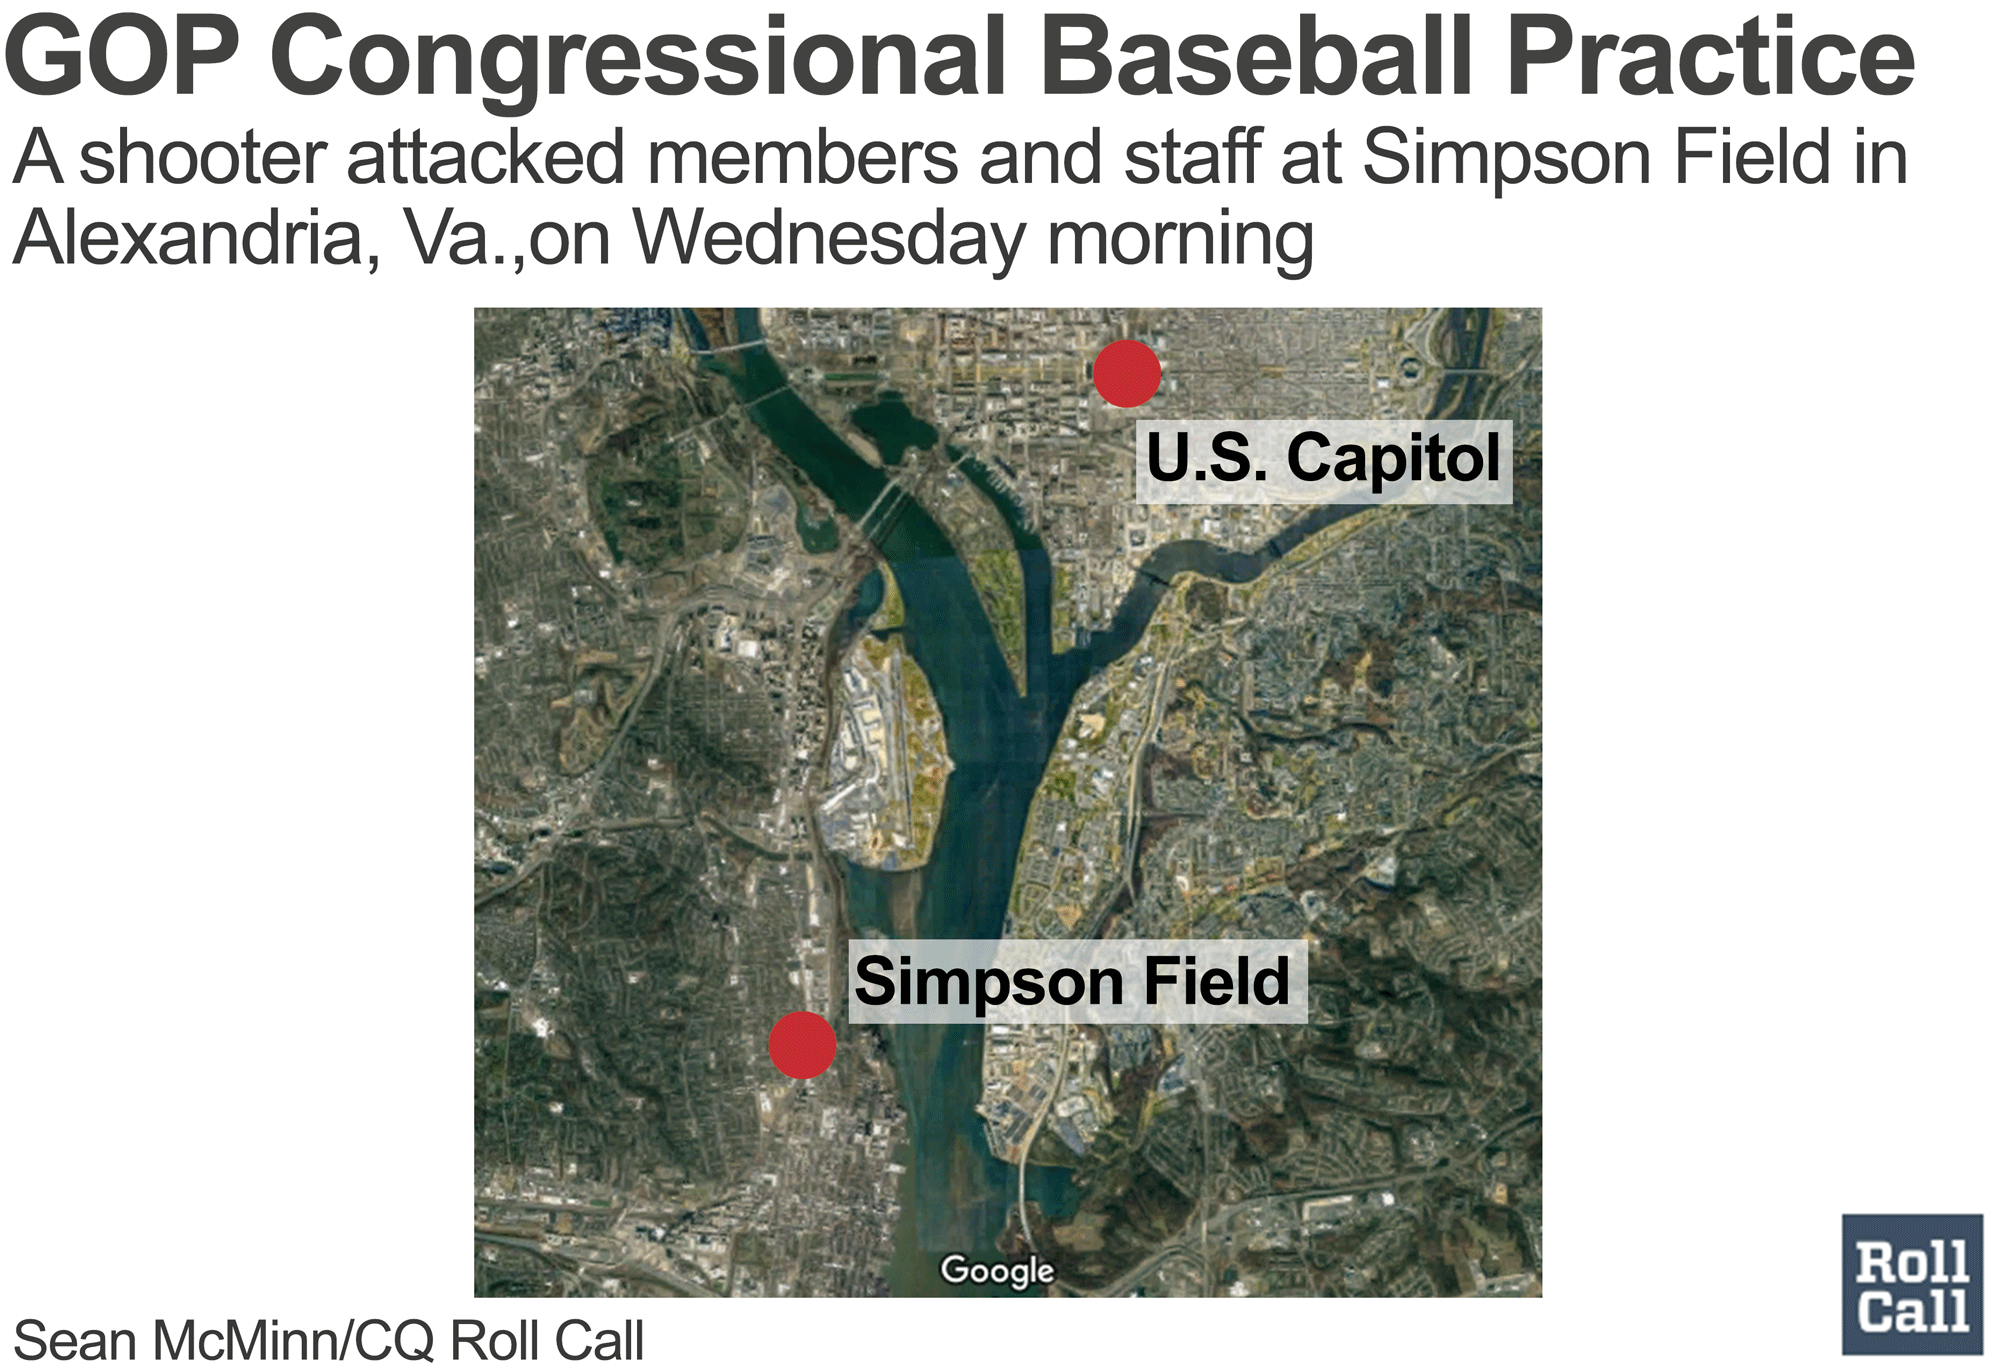 House Majority Whip shot at during congressional baseball practice